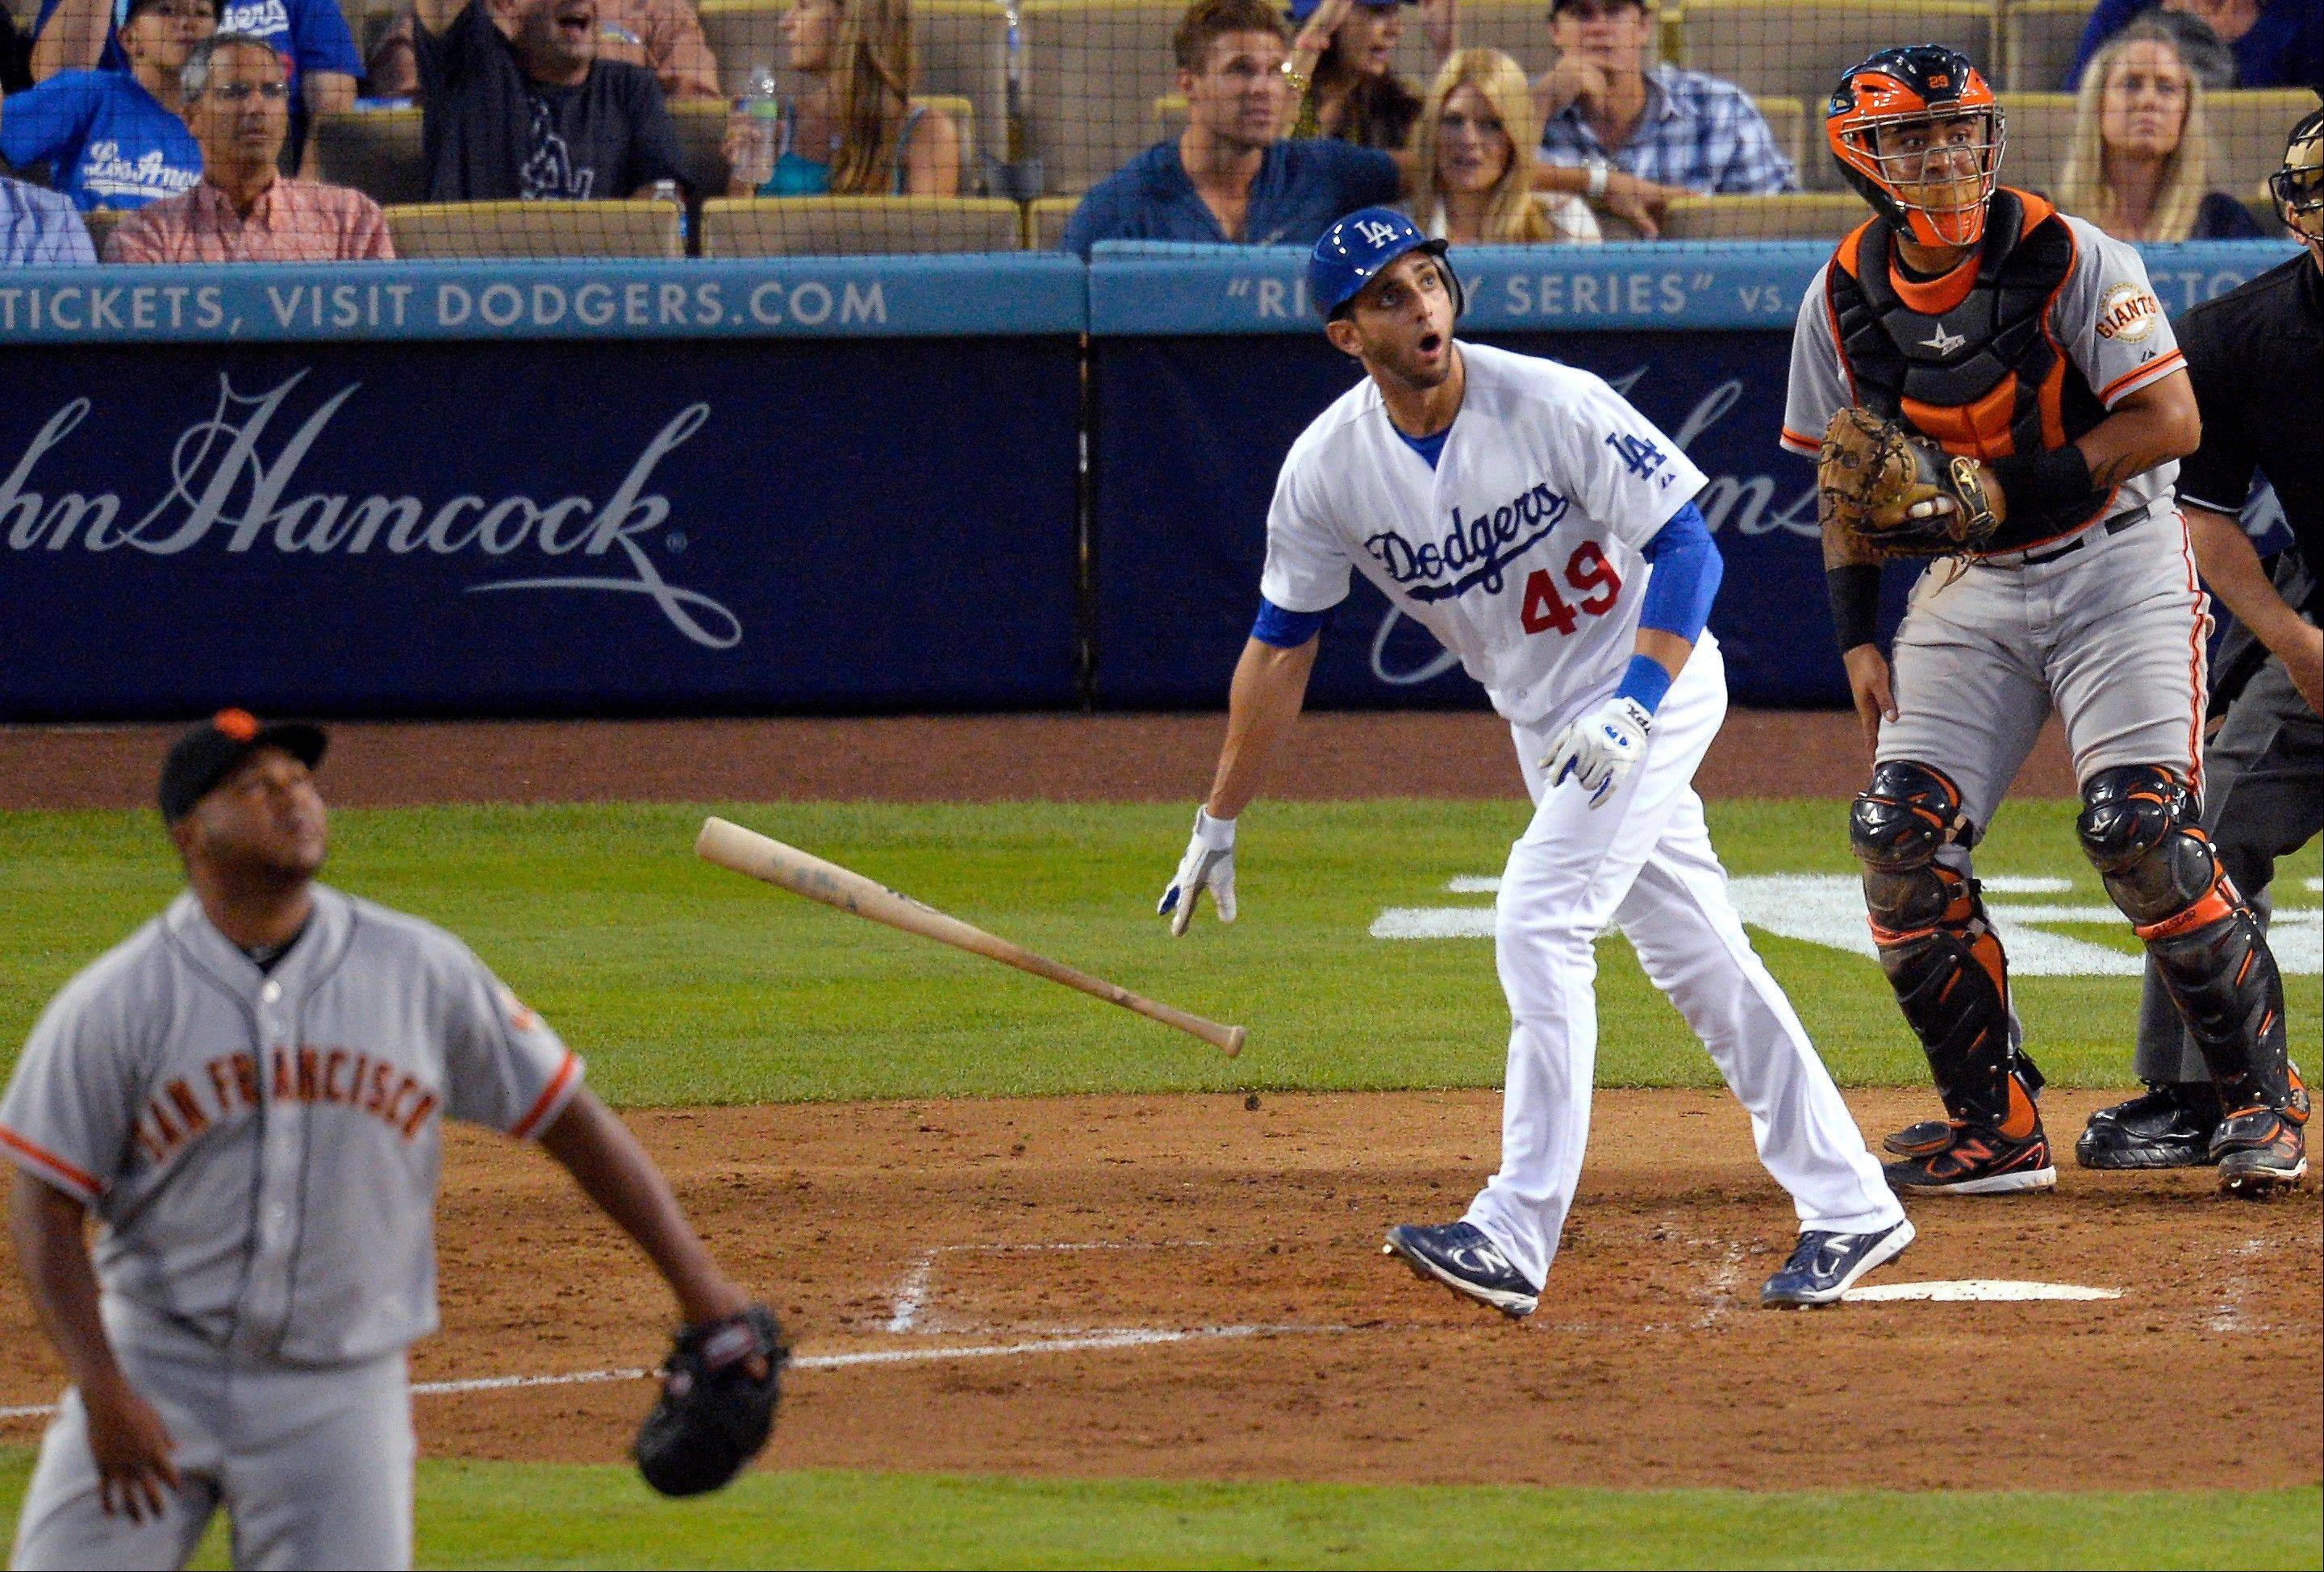 The Dodgers� Alex Castellanos, center, watches his solo home run off San Francisco Giants relief pitcher Jean Machi during the eighth inning Wednesday in Los Angeles.